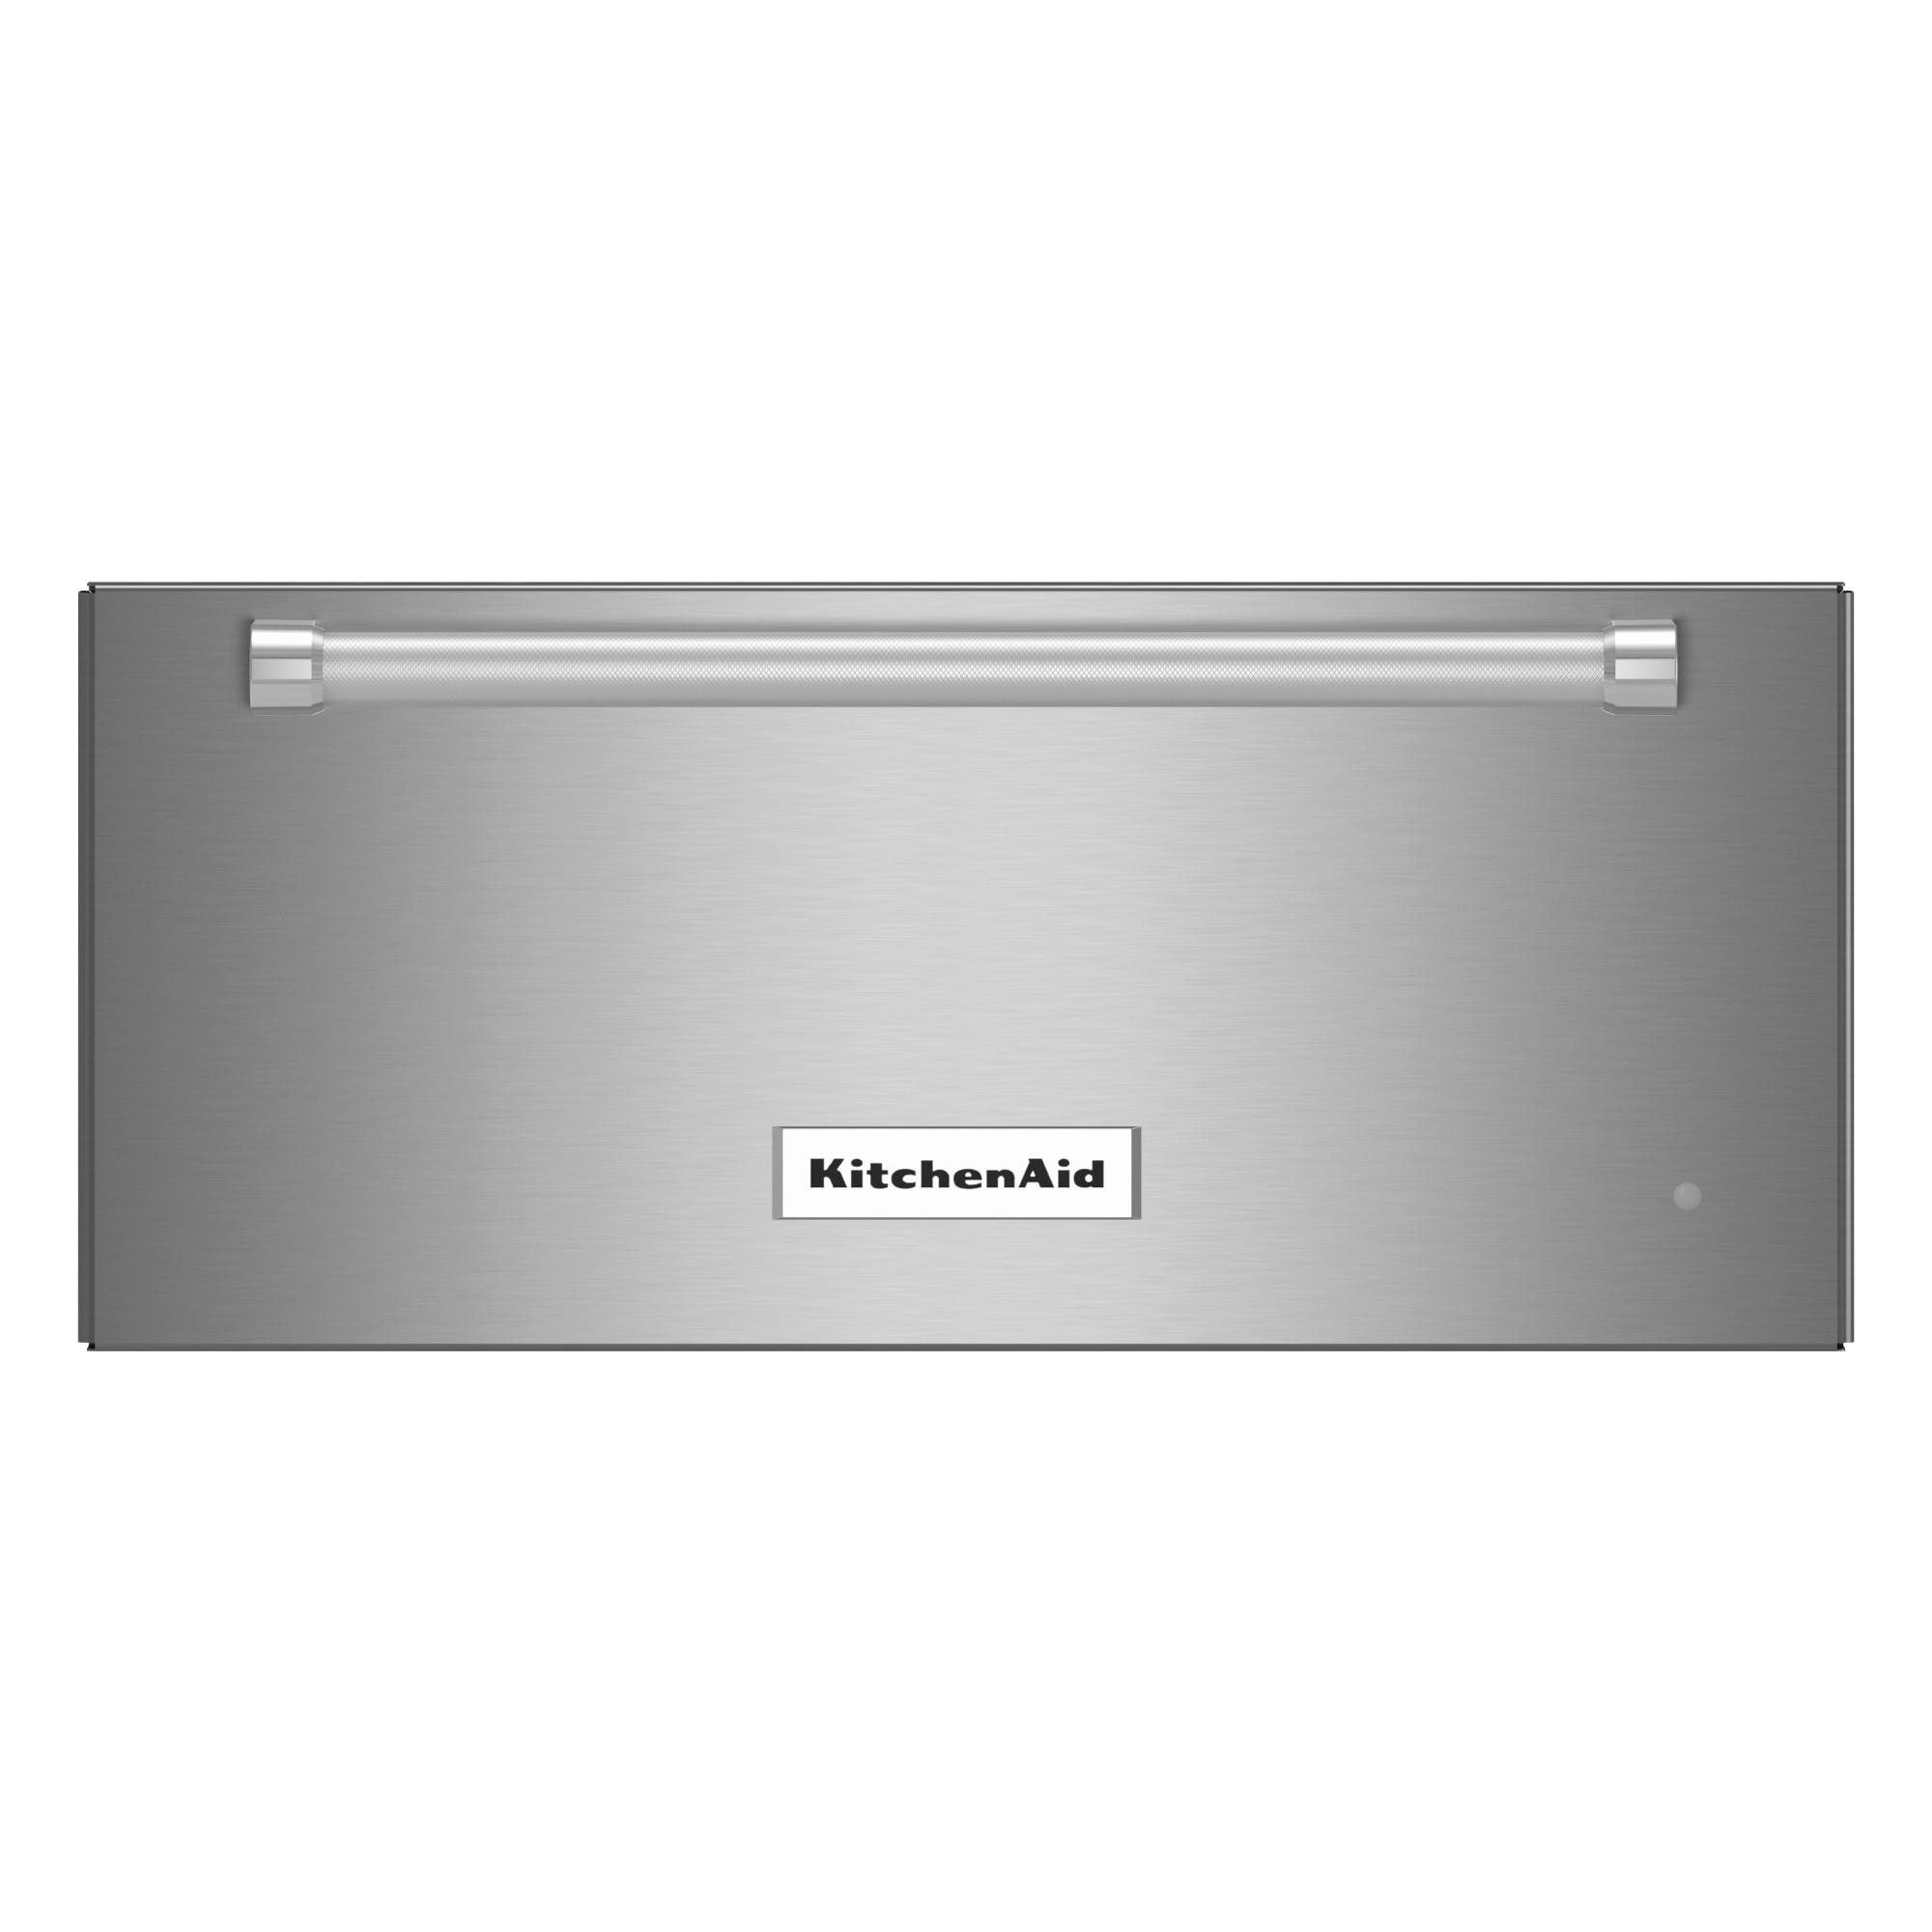 KitchenAid KOWT104ESS 24 Warming Drawer - Stainless Steel